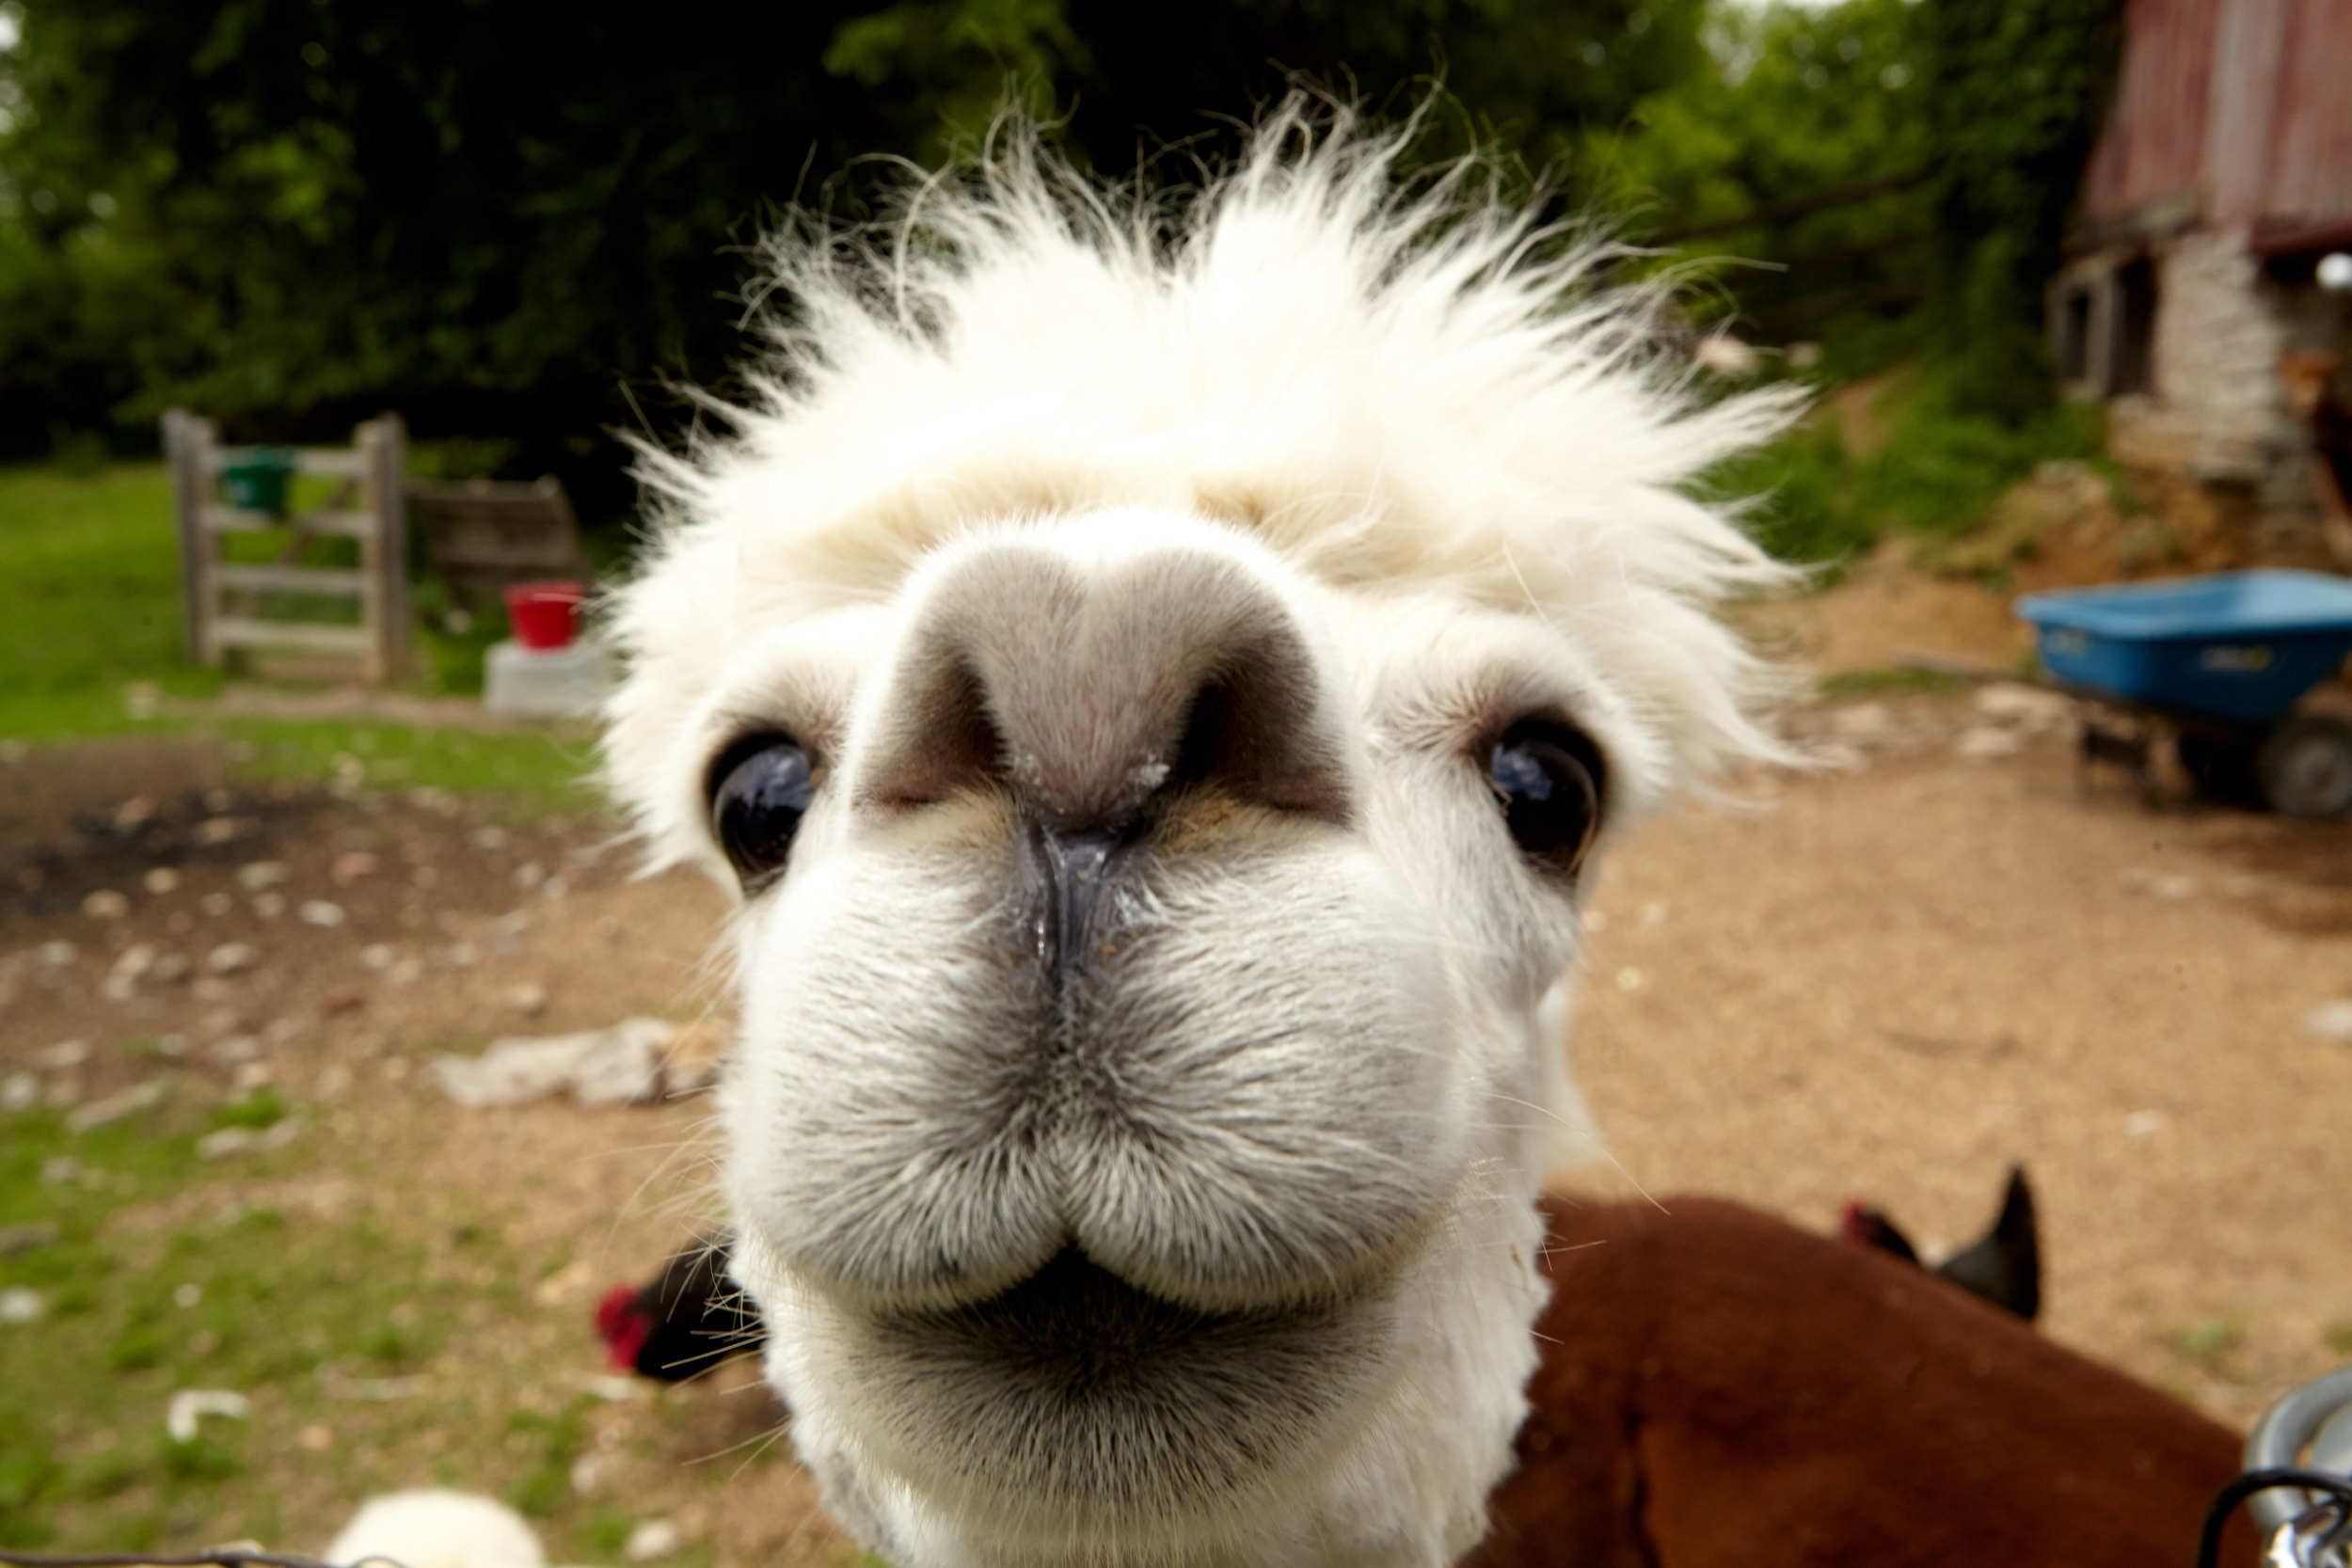 Spike the Alpaca, he's a stud. Photo by Brooke Shanesy